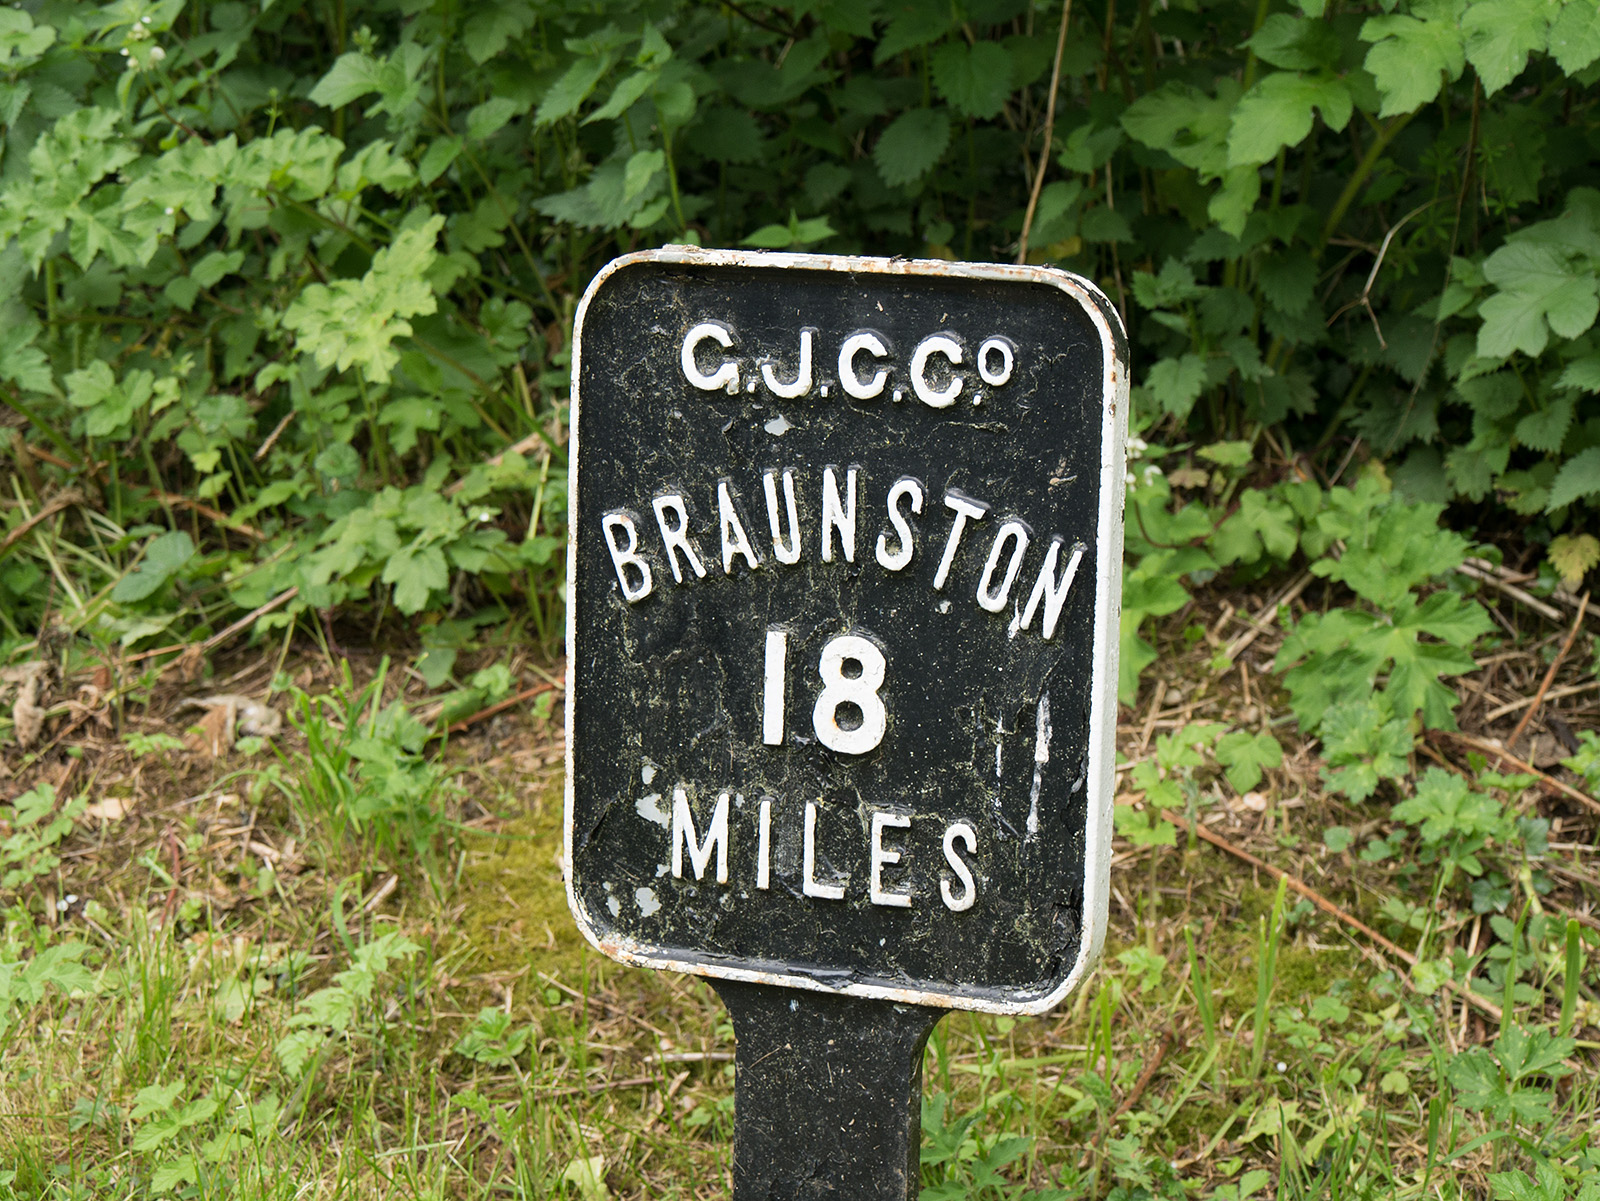 Only 18 miles to Braunstone junction